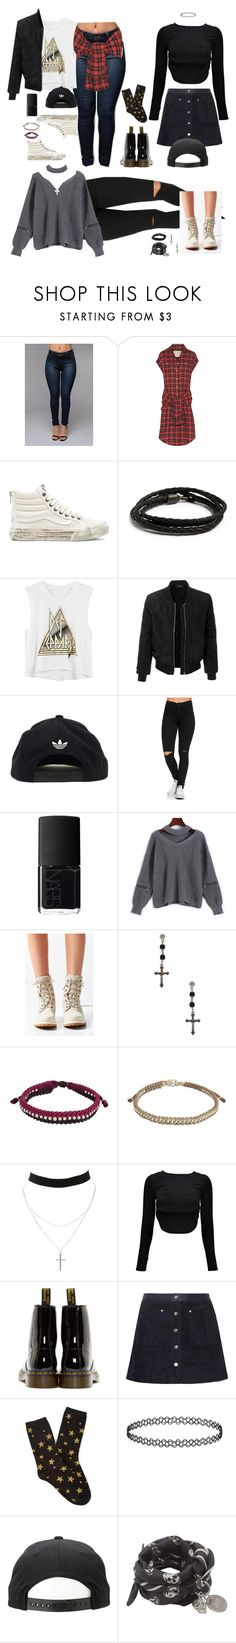 """""""Jane/REXH O.K MV Outfits"""" by rexhogaccount ❤ liked on Polyvore featuring R13, Vans, MIANSAI, LE3NO, adidas, NARS Cosmetics, Timberland, Givenchy, NOVICA and Charlotte Russe"""